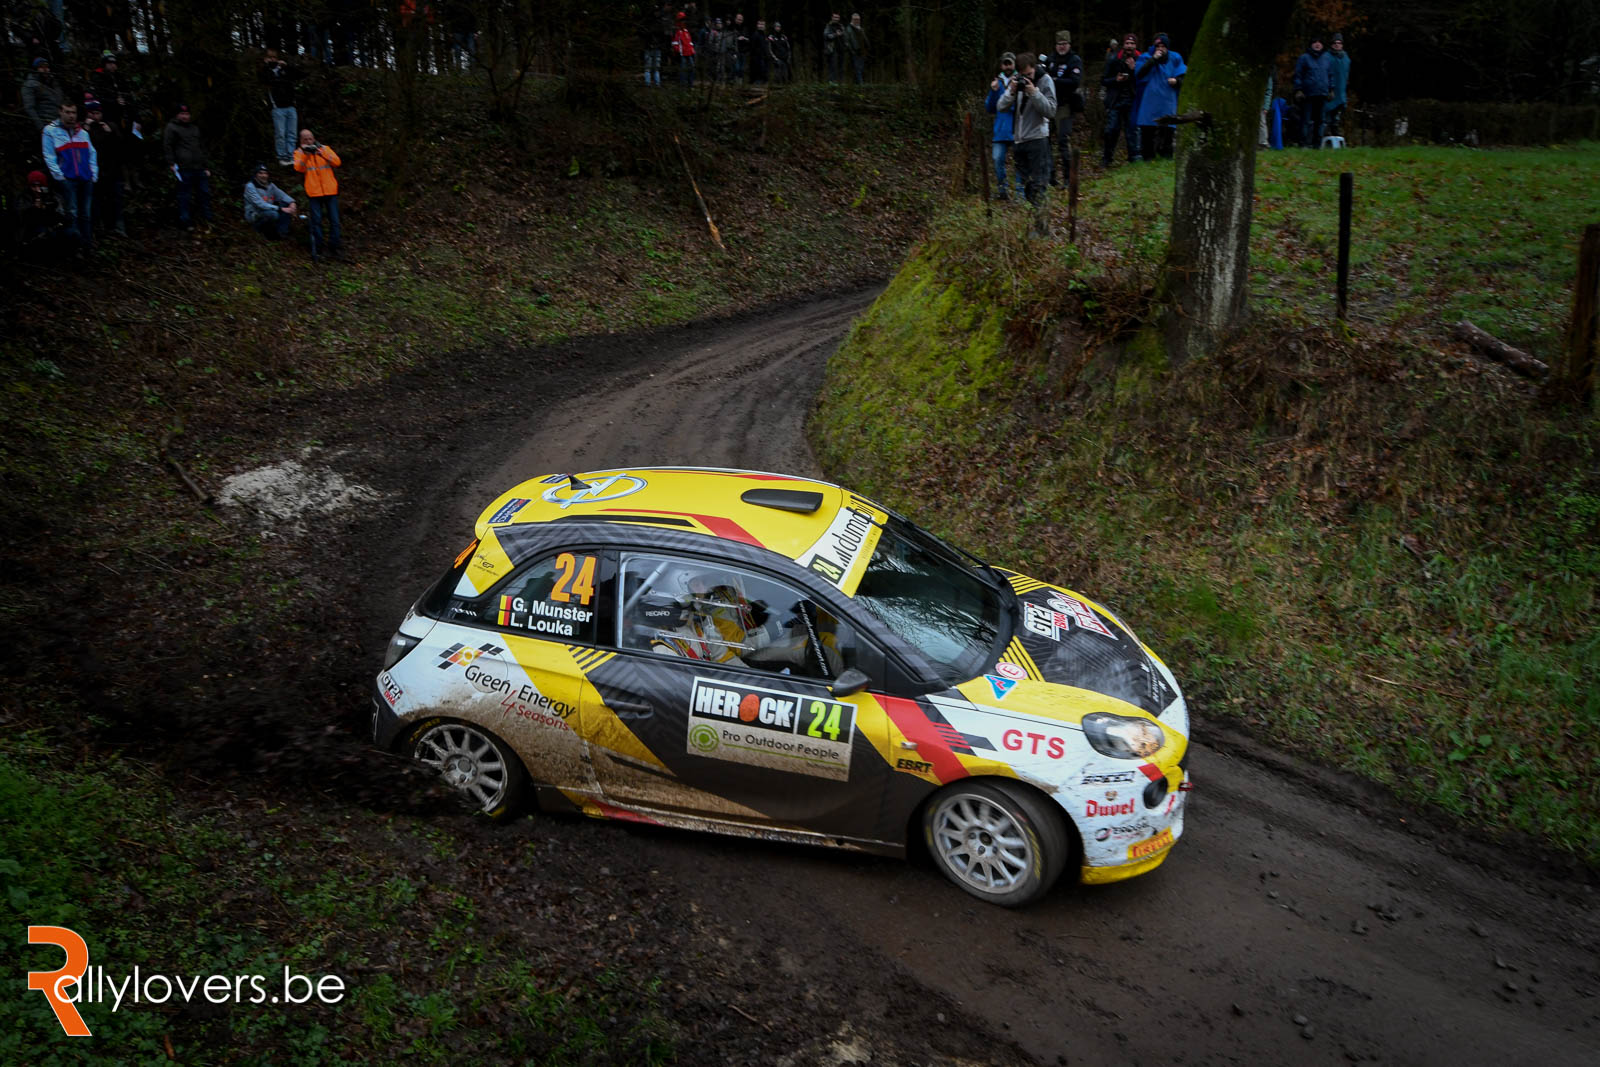 TAC - Pirelli Junior BRC - Concurrentie is de beste leerschool